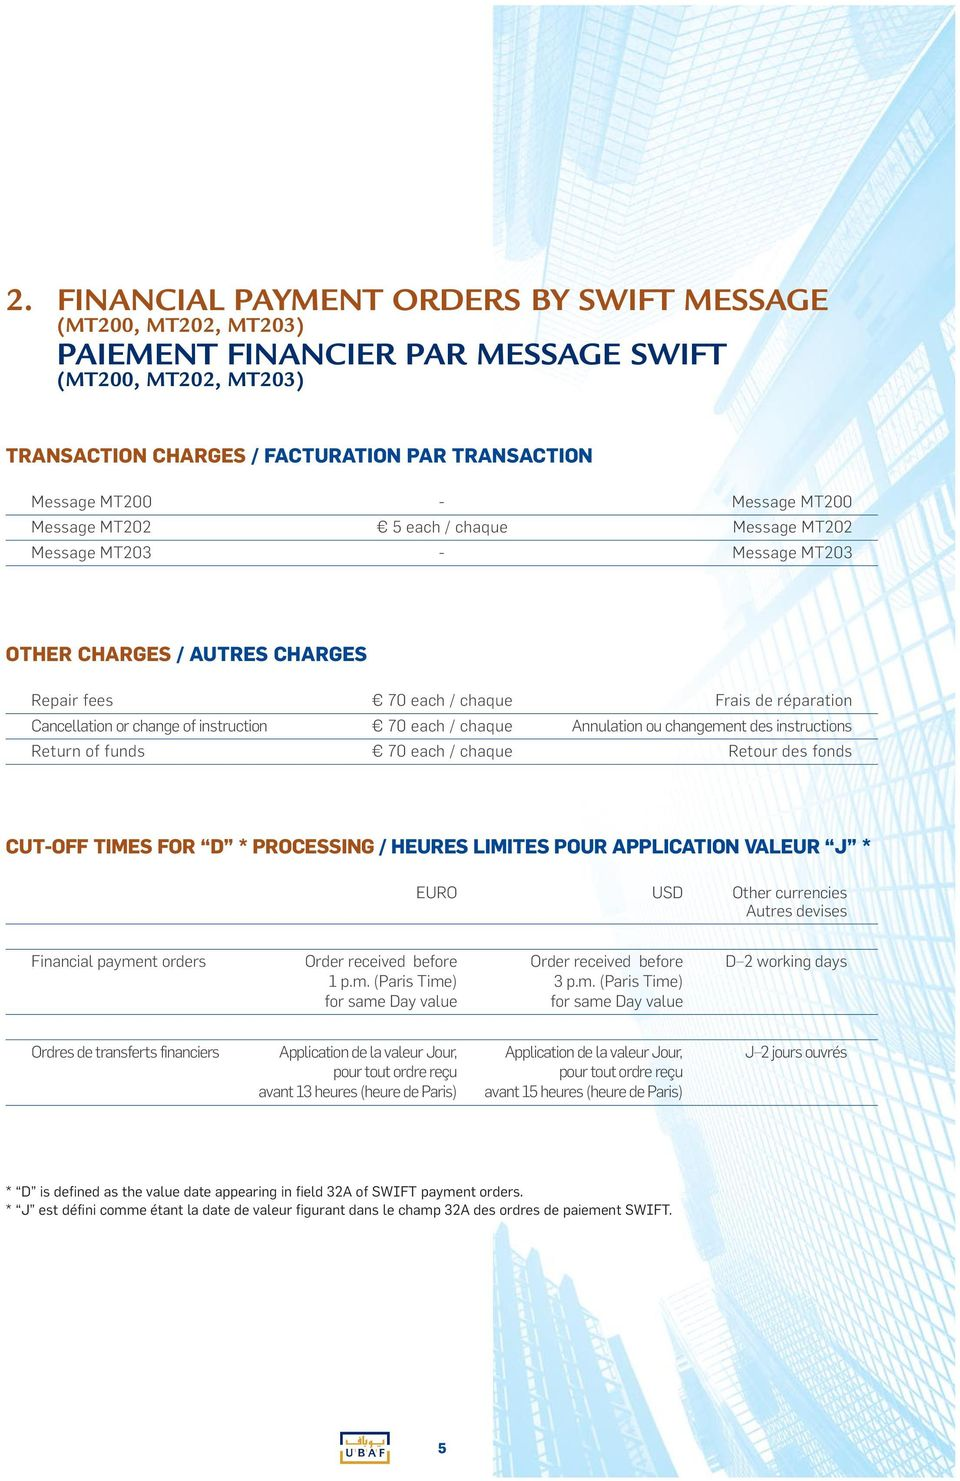 70 each / chaque Annulation ou changement des instructions Return of funds 70 each / chaque Retour des fonds CUT-OFF TIMES FOR D * PROCESSING / HEURES LIMITES POUR APPLICATION VALEUR J * EURO USD